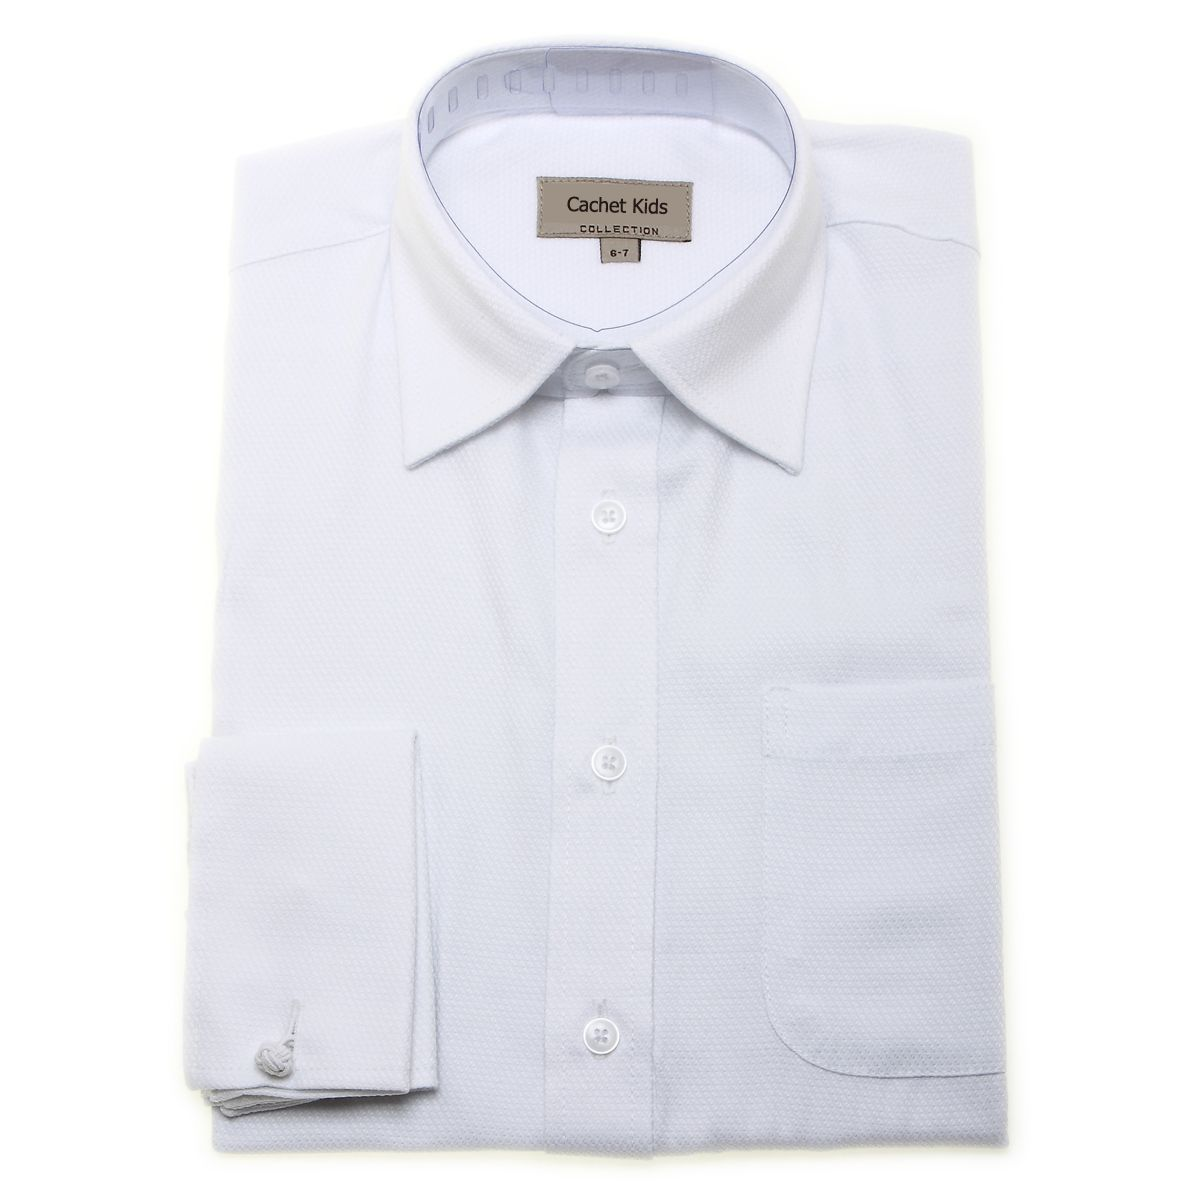 Boys White Cufflinks Shirt With Double Cuff And Cufflinks